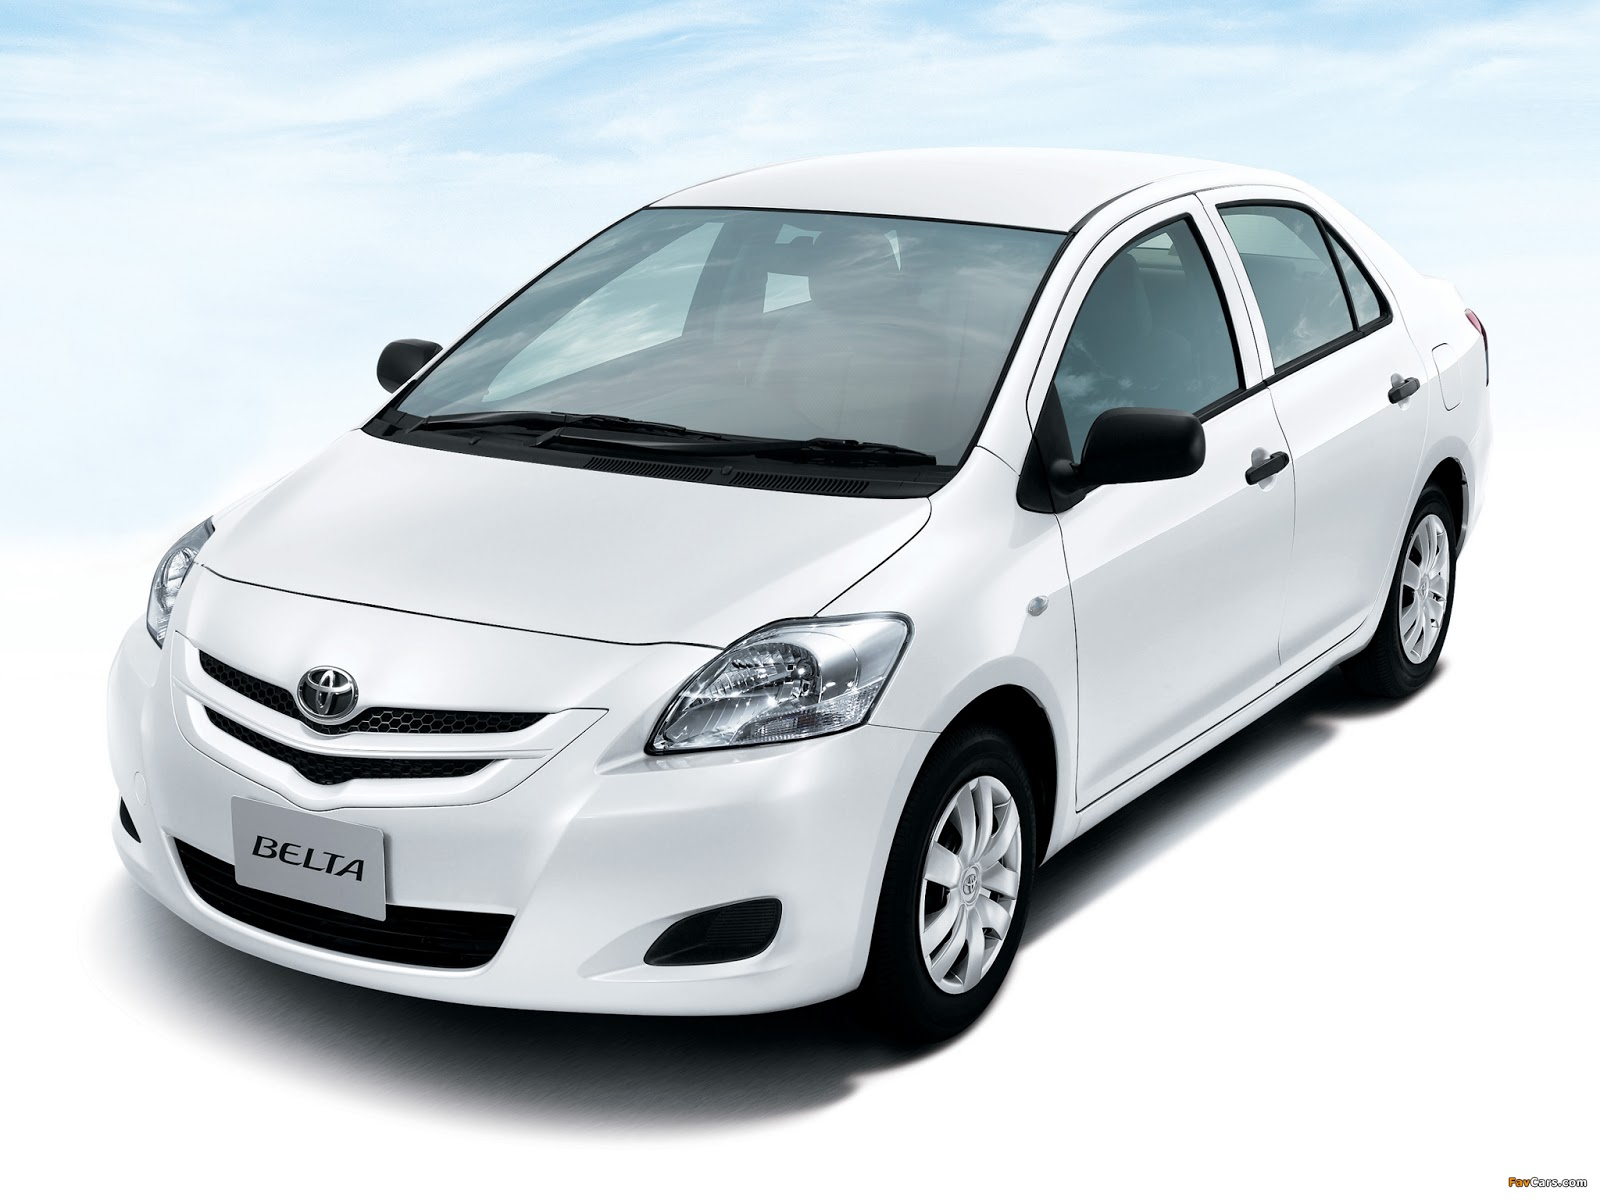 Cars Wallpapers And Specefication Toyota Belta Latest